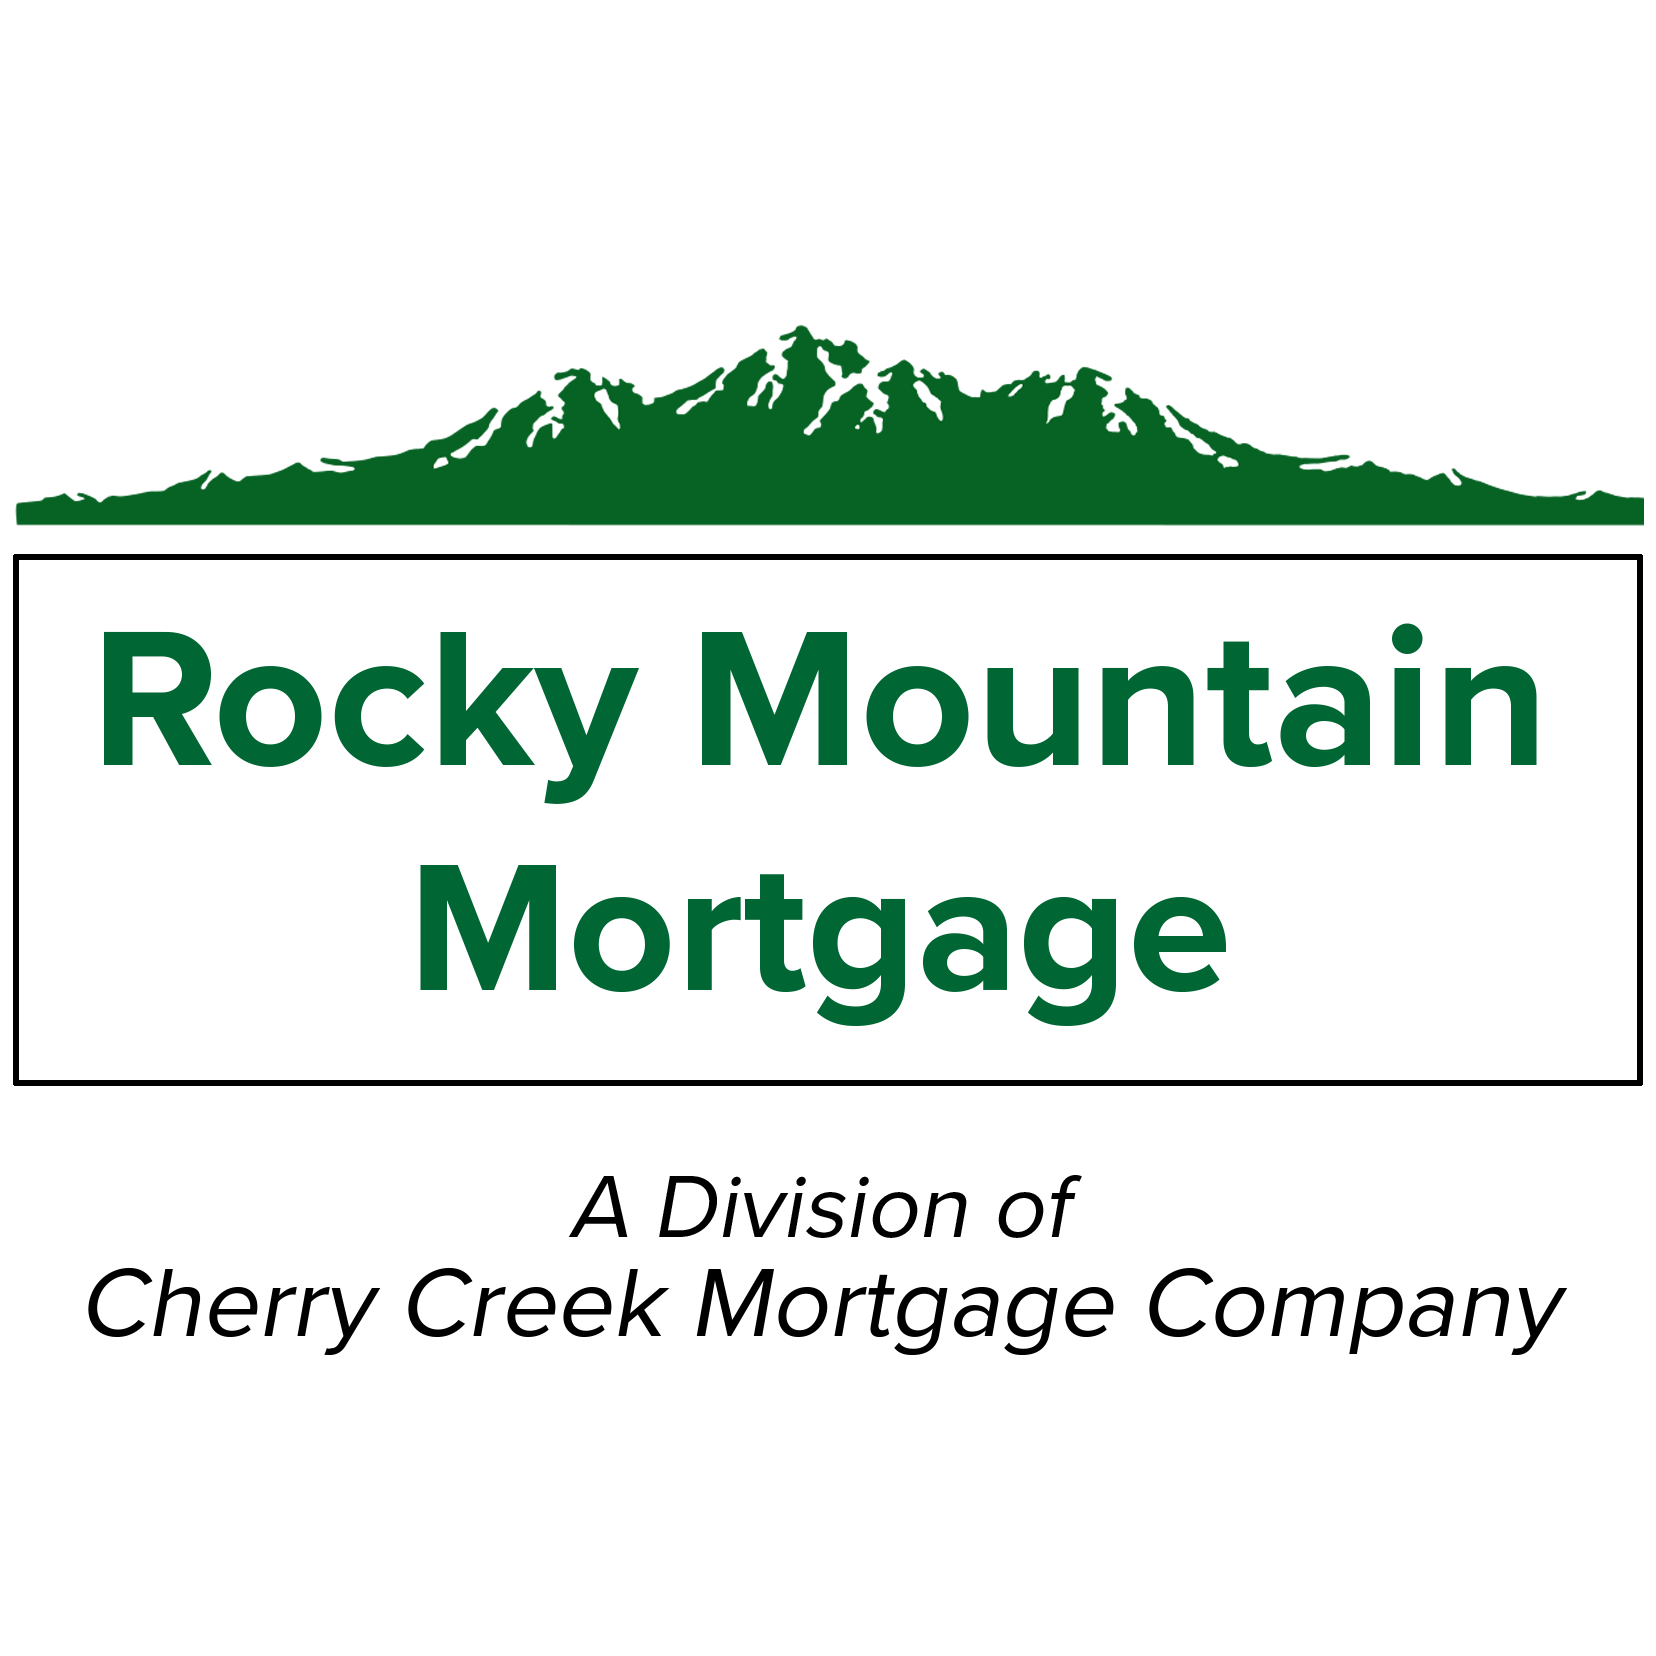 Rocky Mountain Mortgage, Allison K. Carey, NMLS #1592344